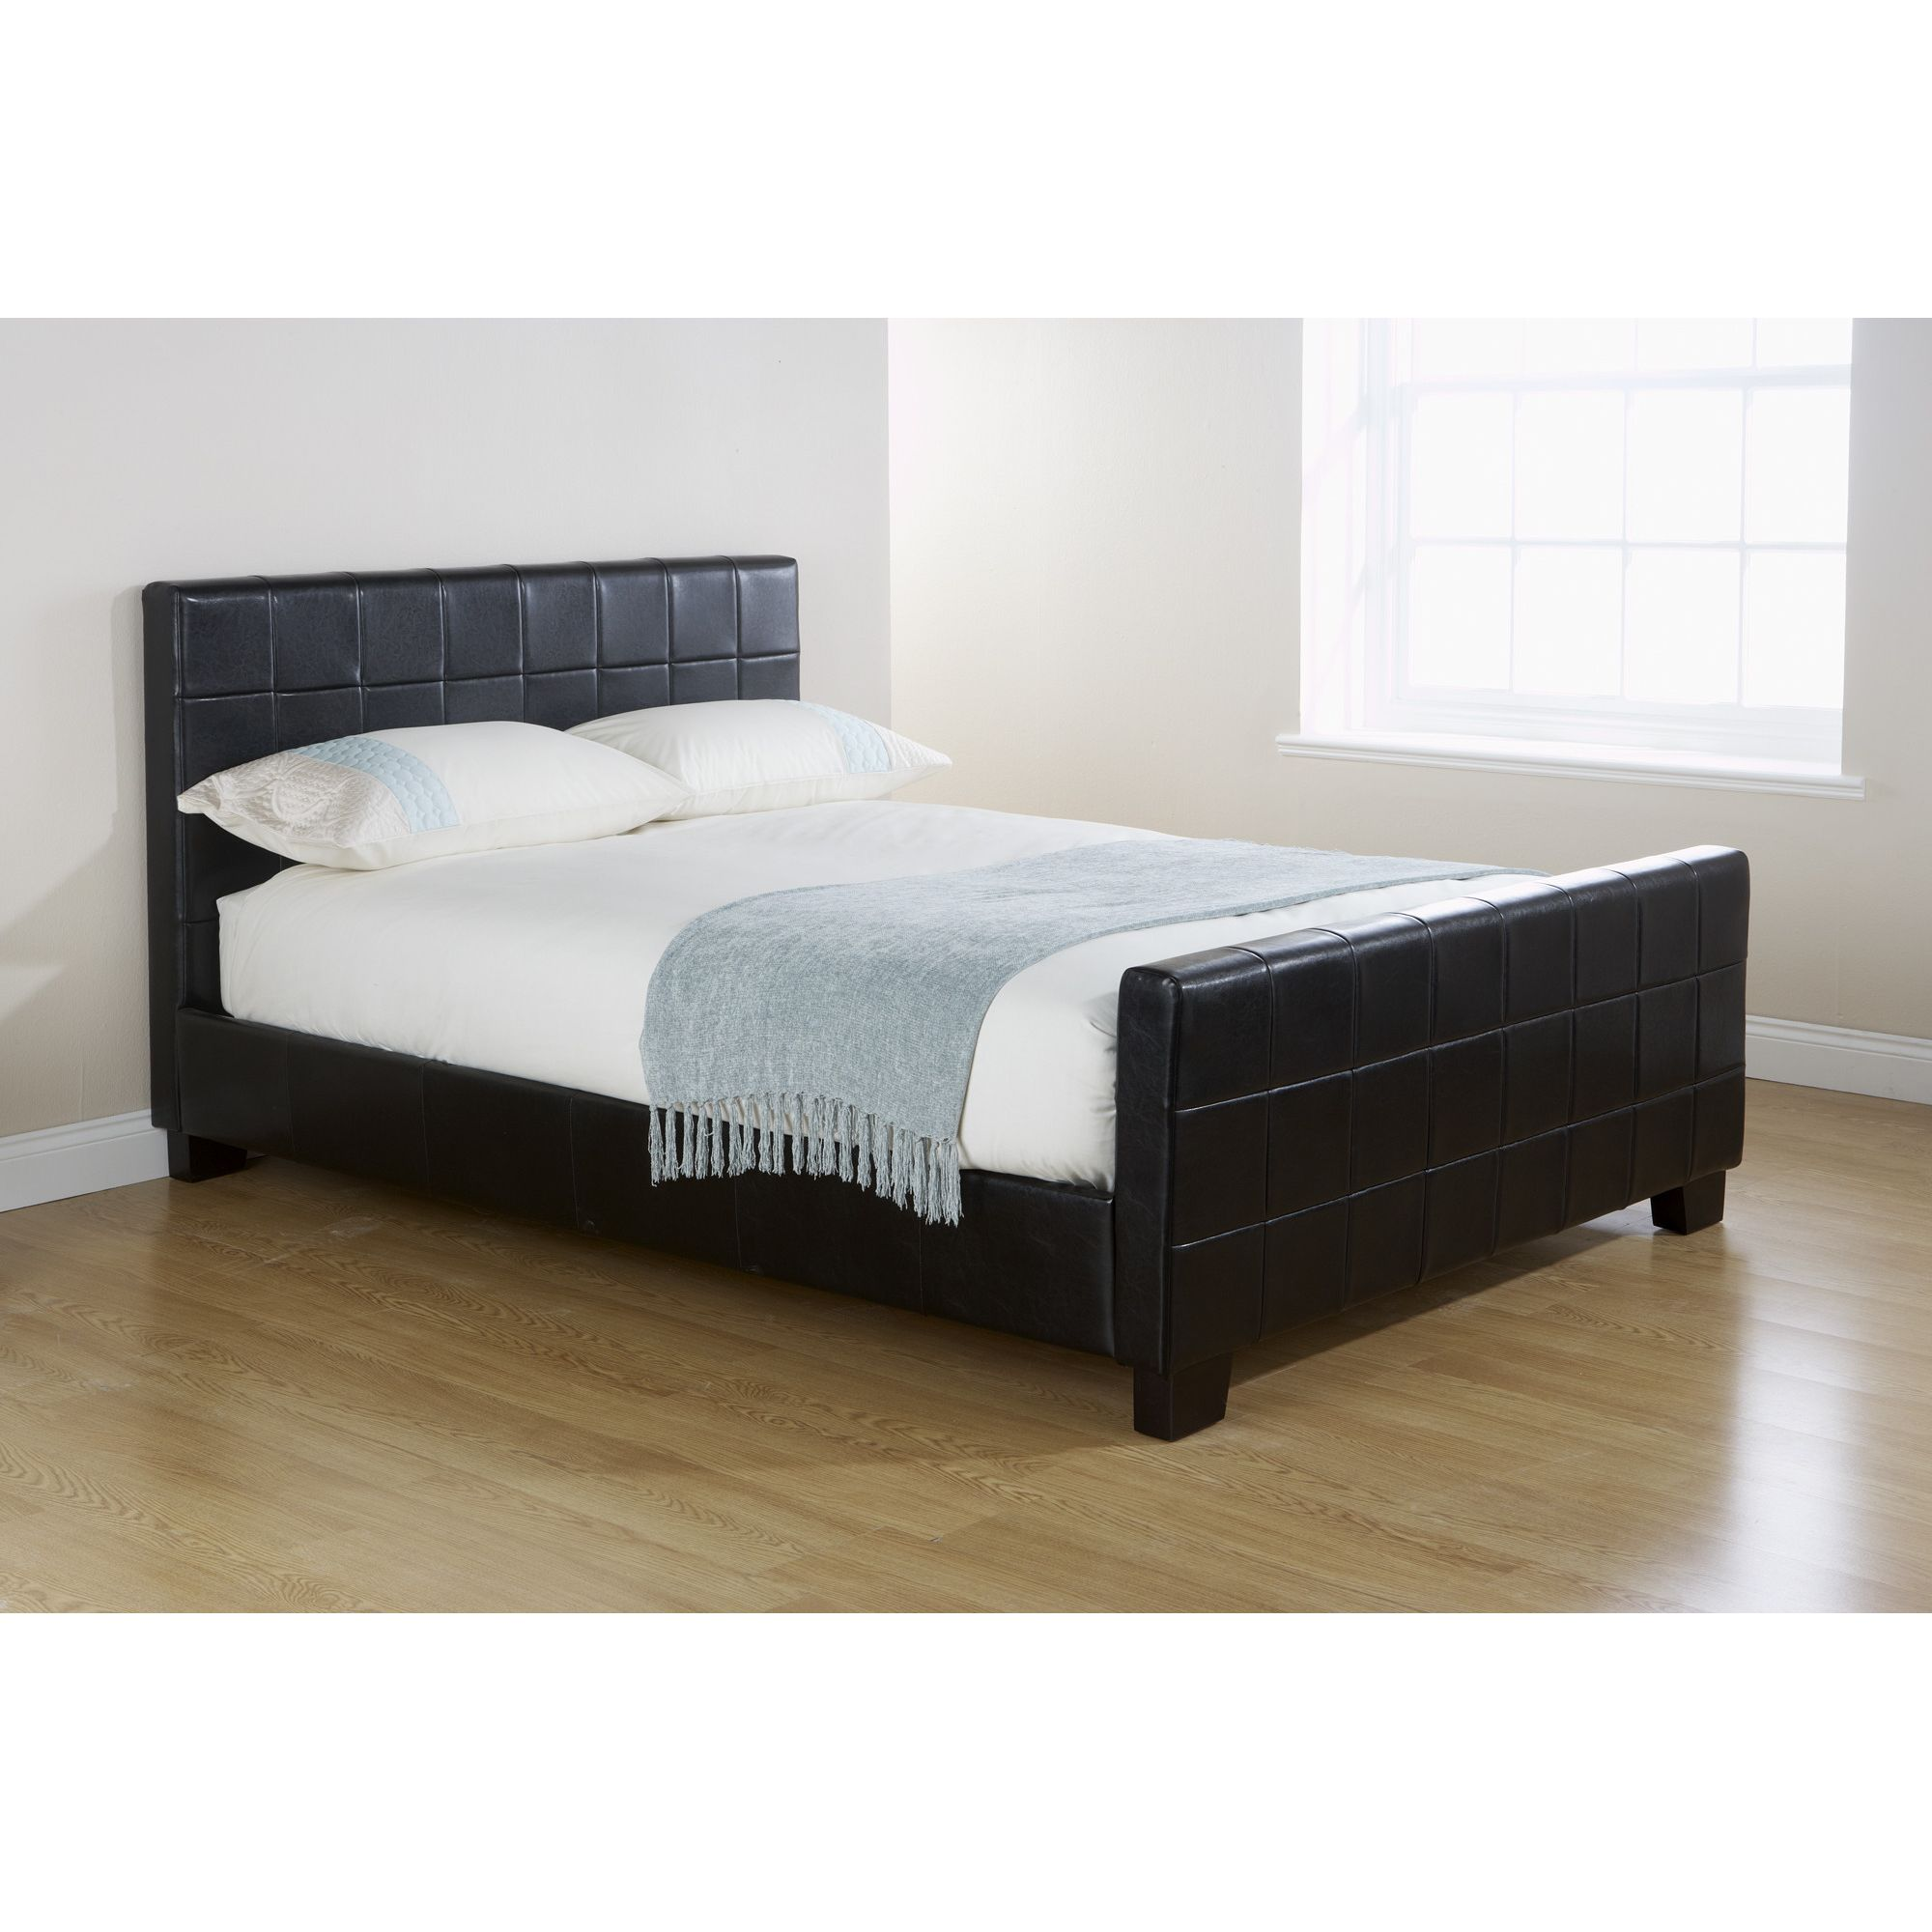 Elements Mayfair Button Bed - Black - King at Tesco Direct